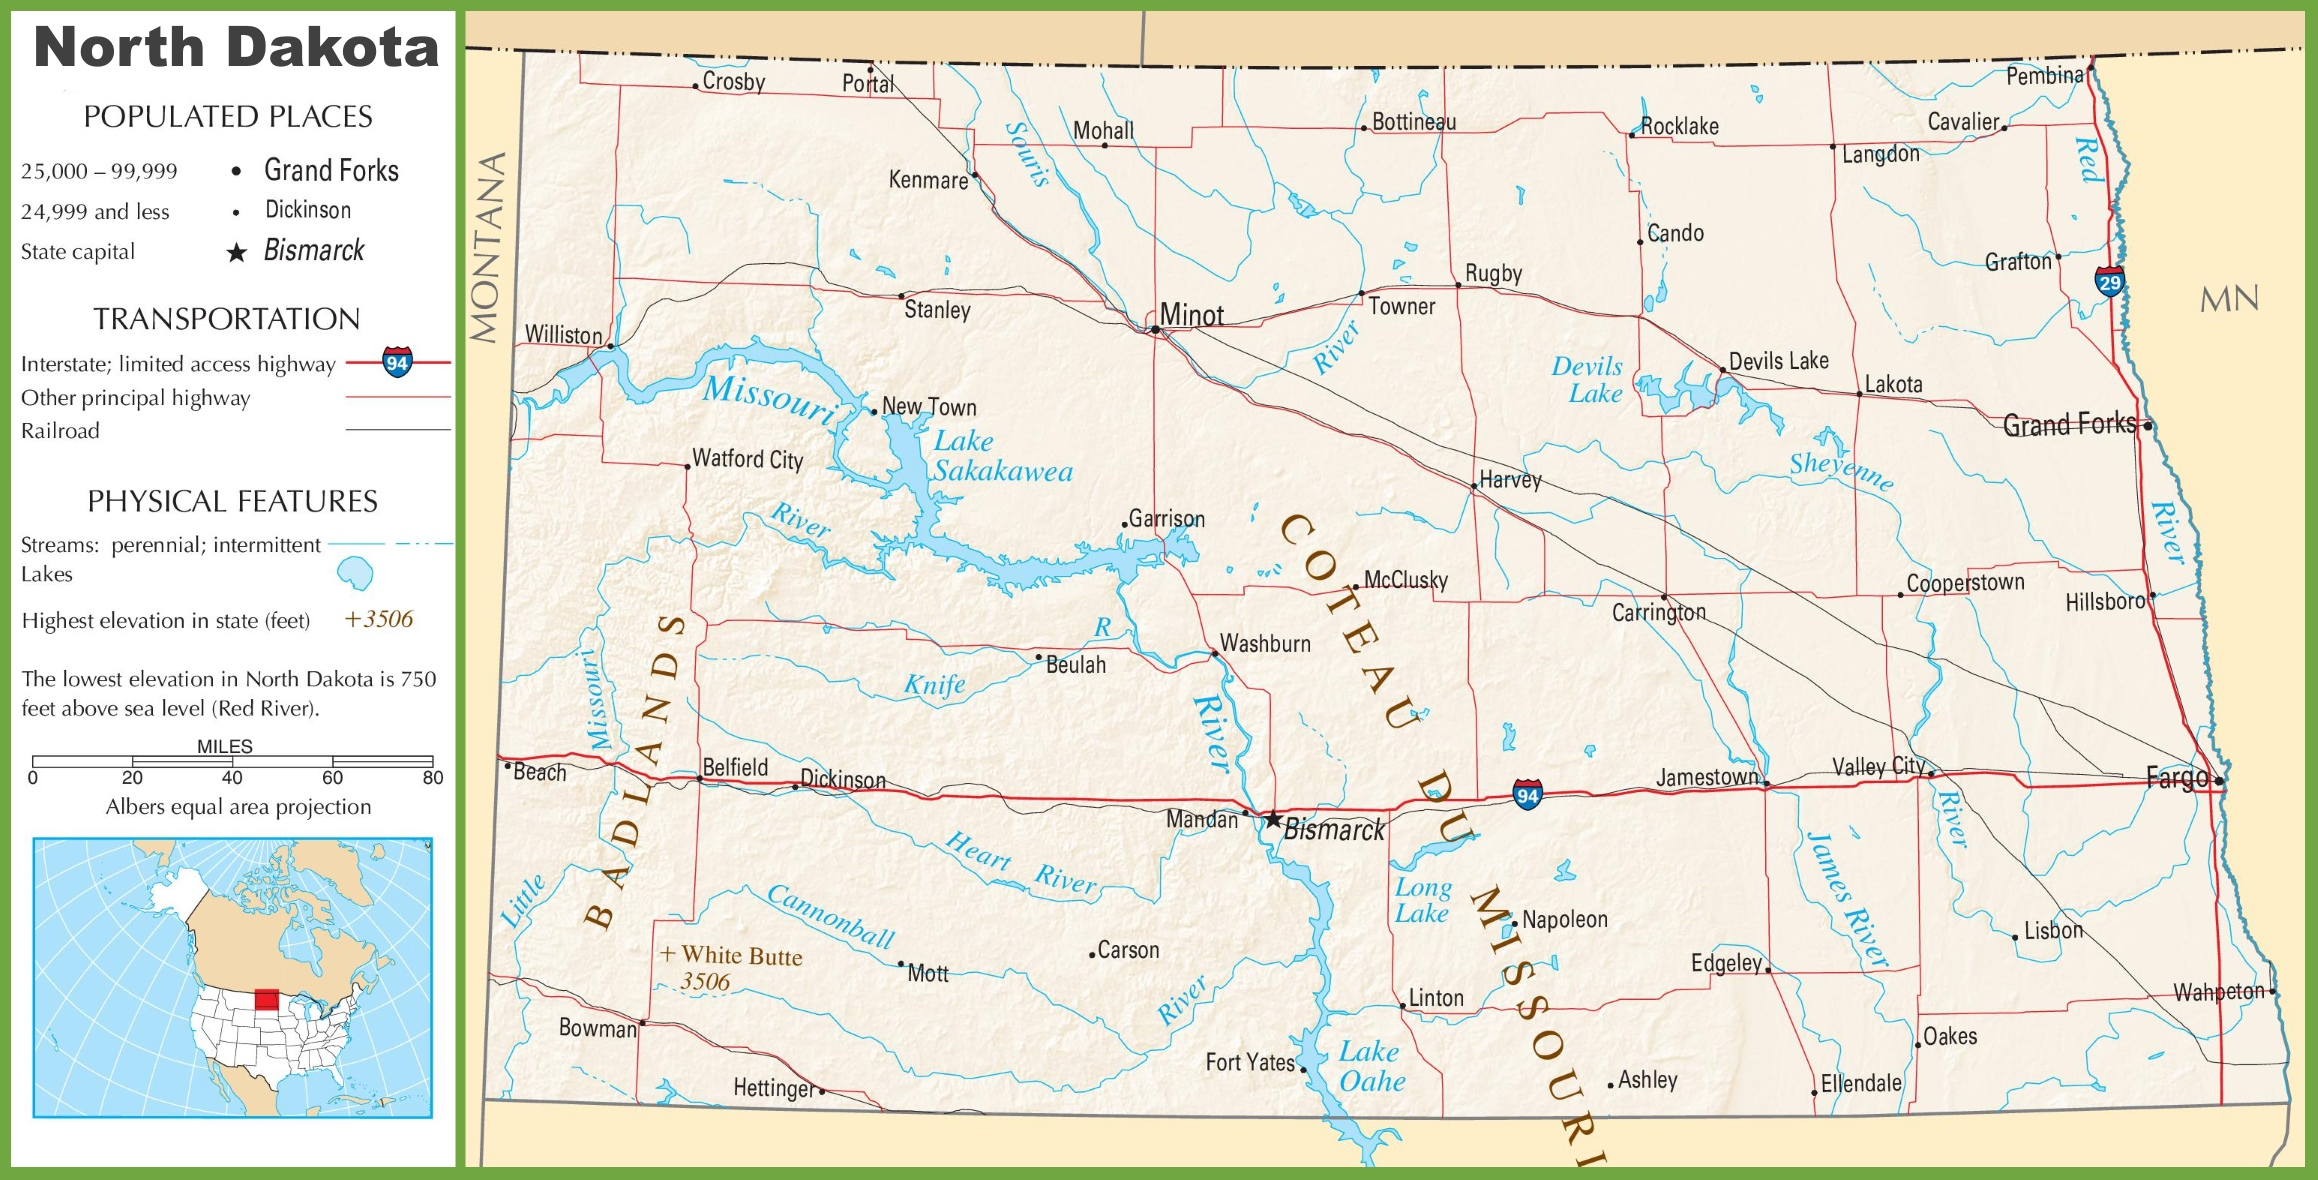 North Dakota highway map